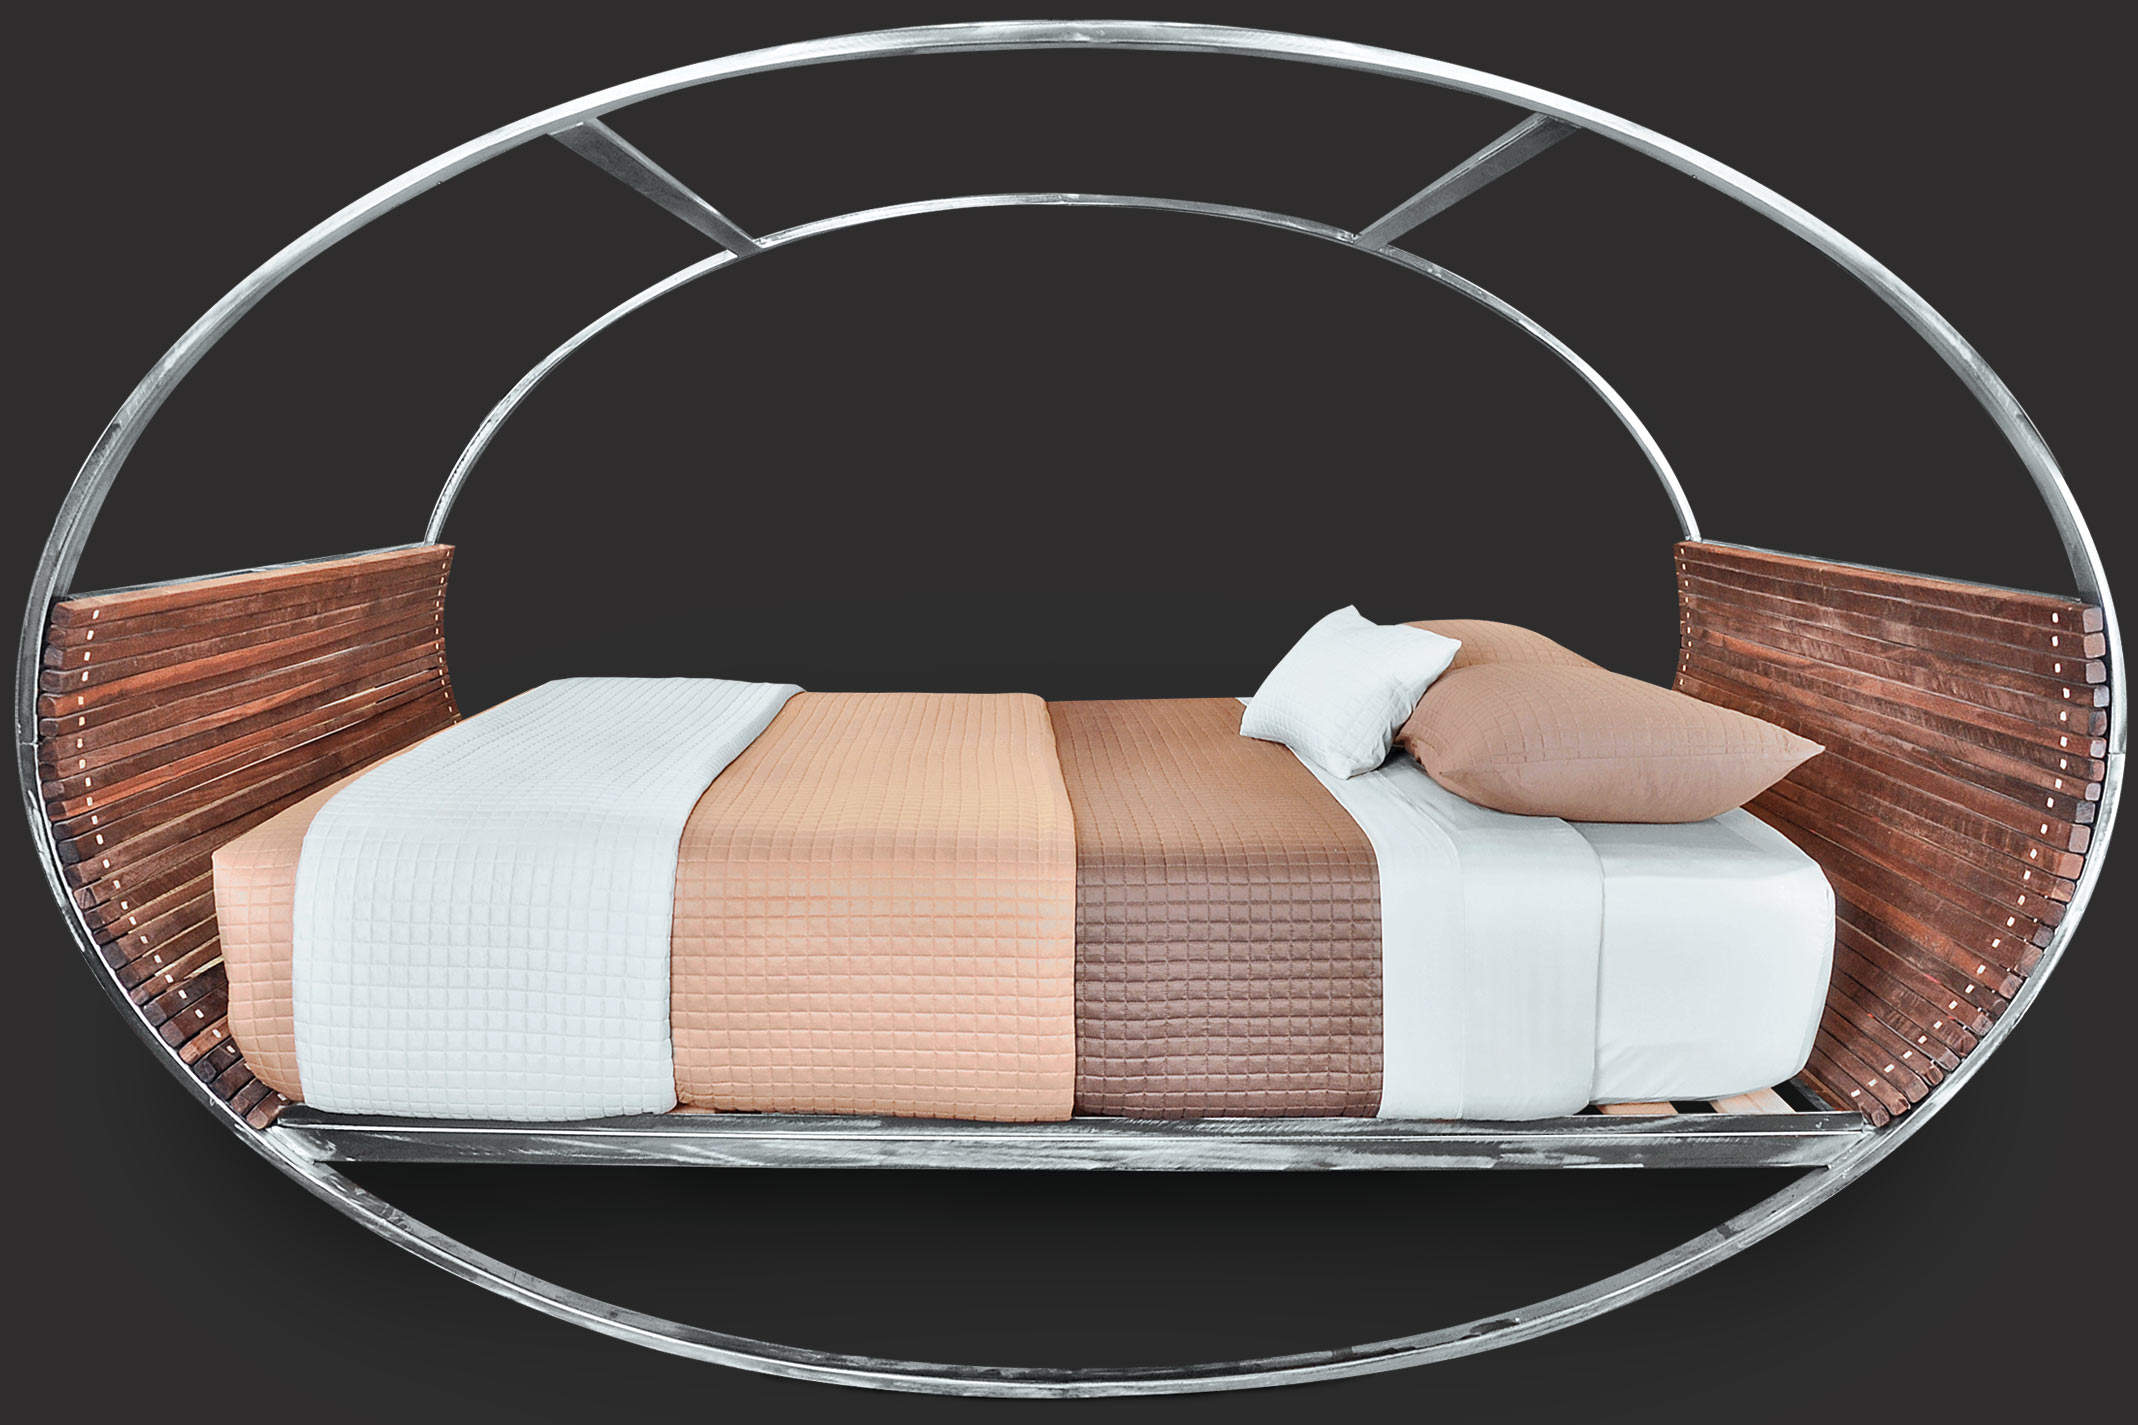 Rocking Beds For Adults